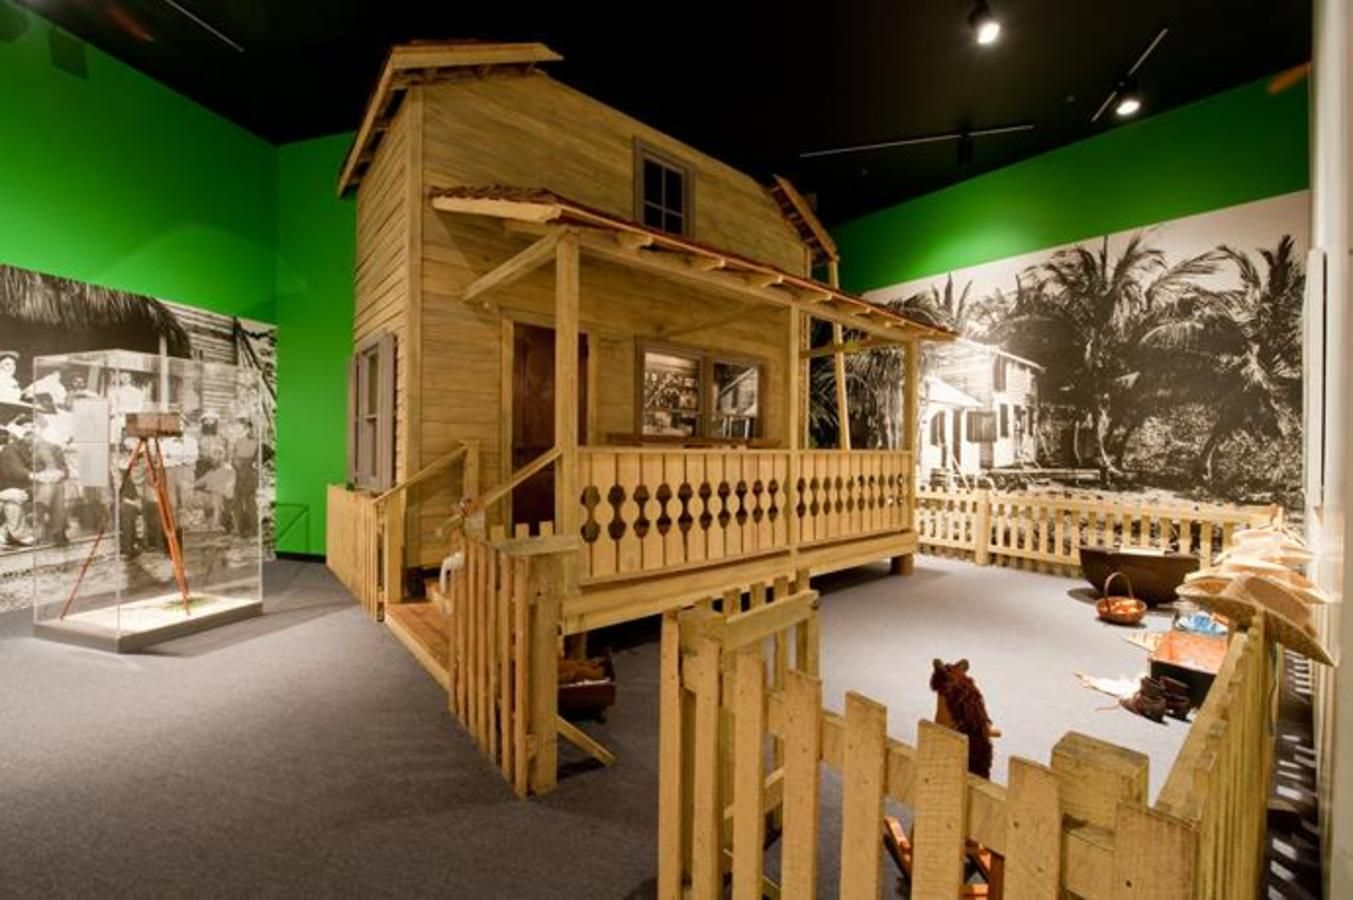 Pioneer House, Tropical Dreams: A People's History of South Florida permanent exhibition